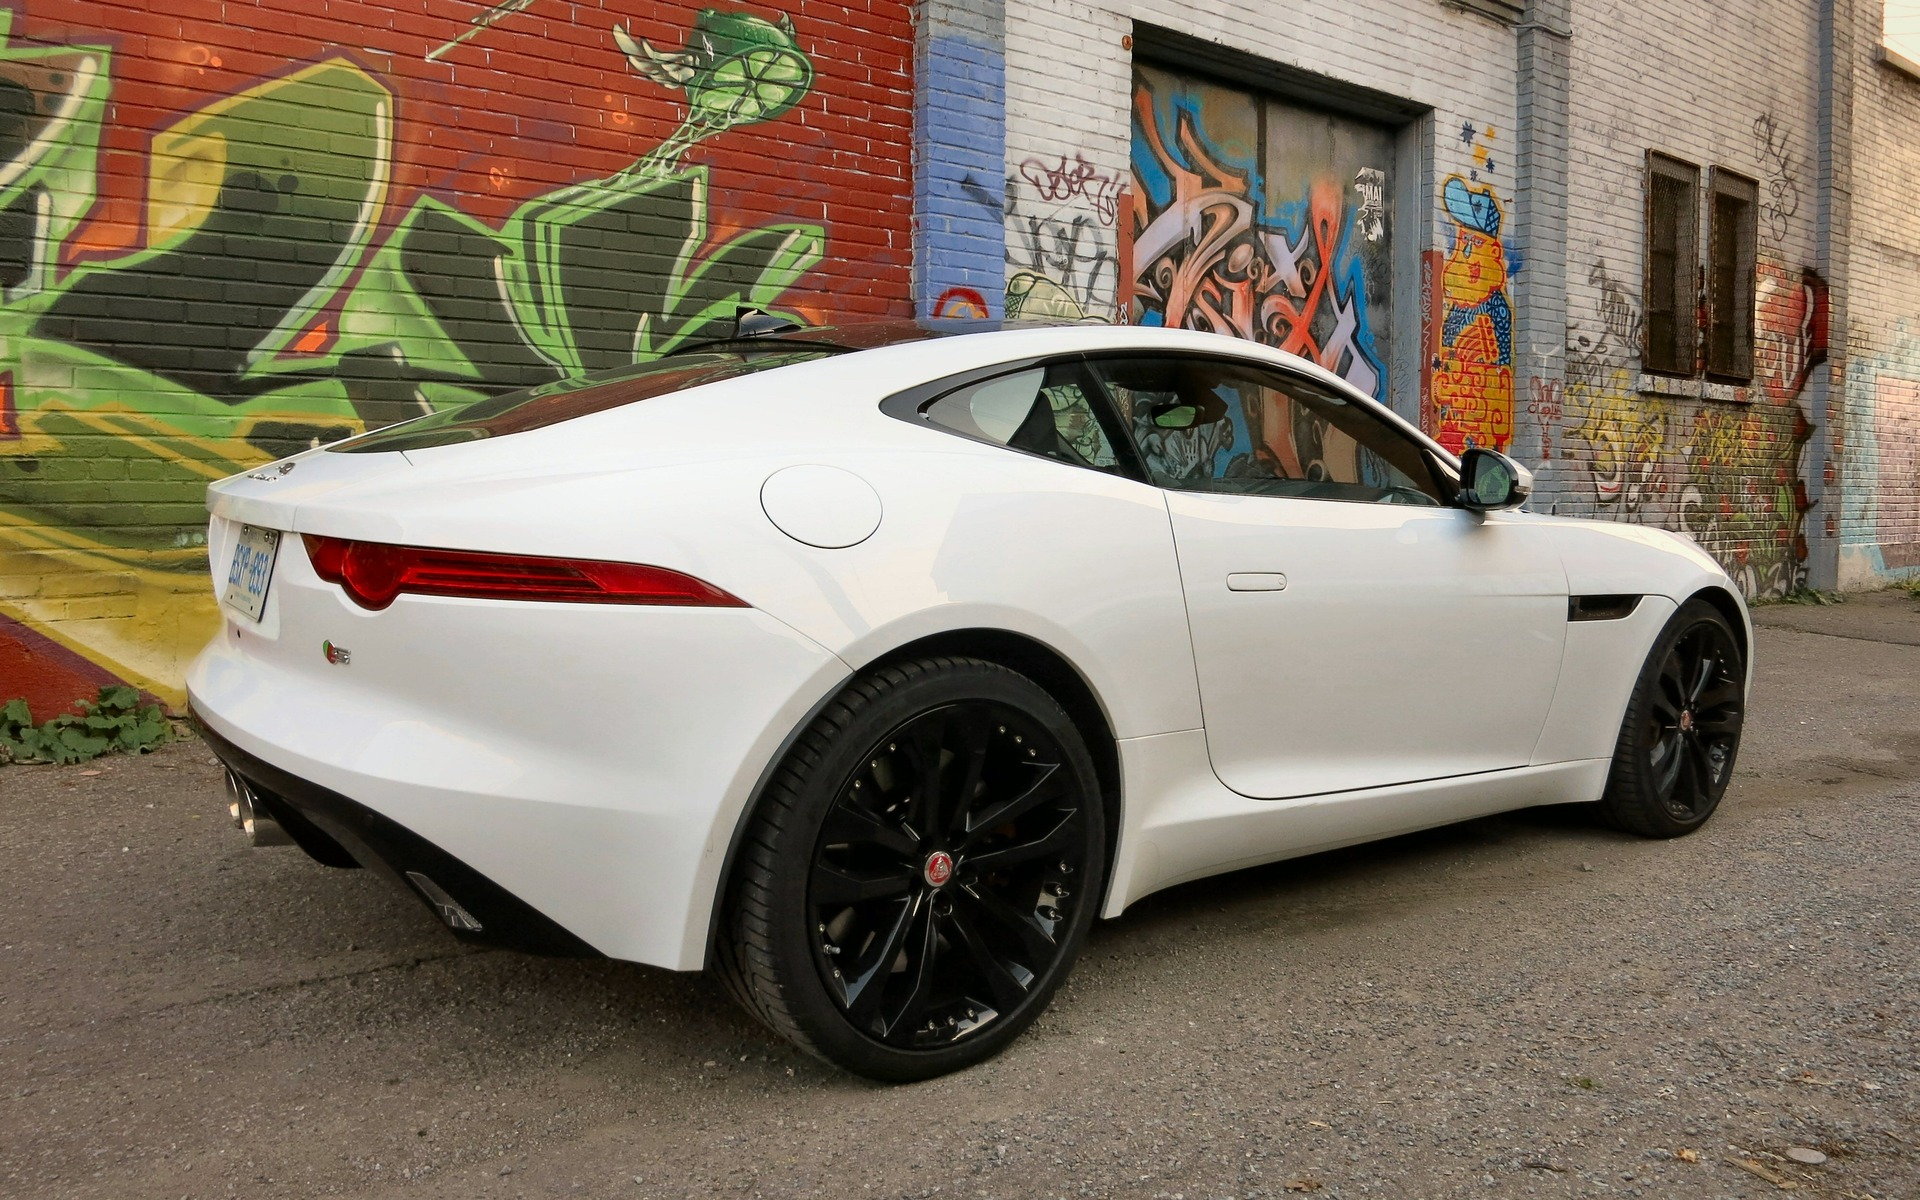 F Type Coupe >> 2015 Jaguar F-Type S Coupe: Perfection, Part II - 3/21